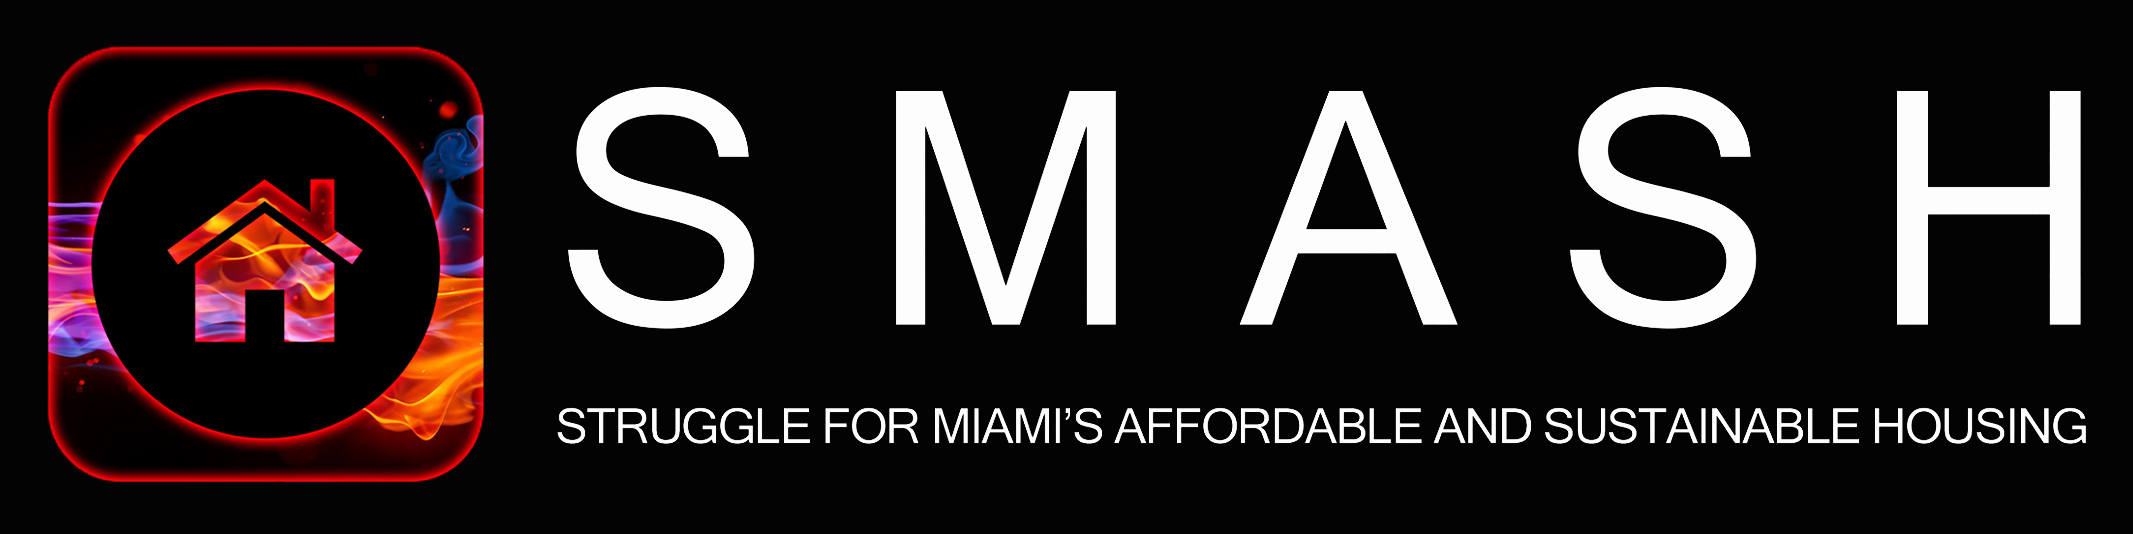 Struggle for Miami's Affordable and Sustainable Housing (